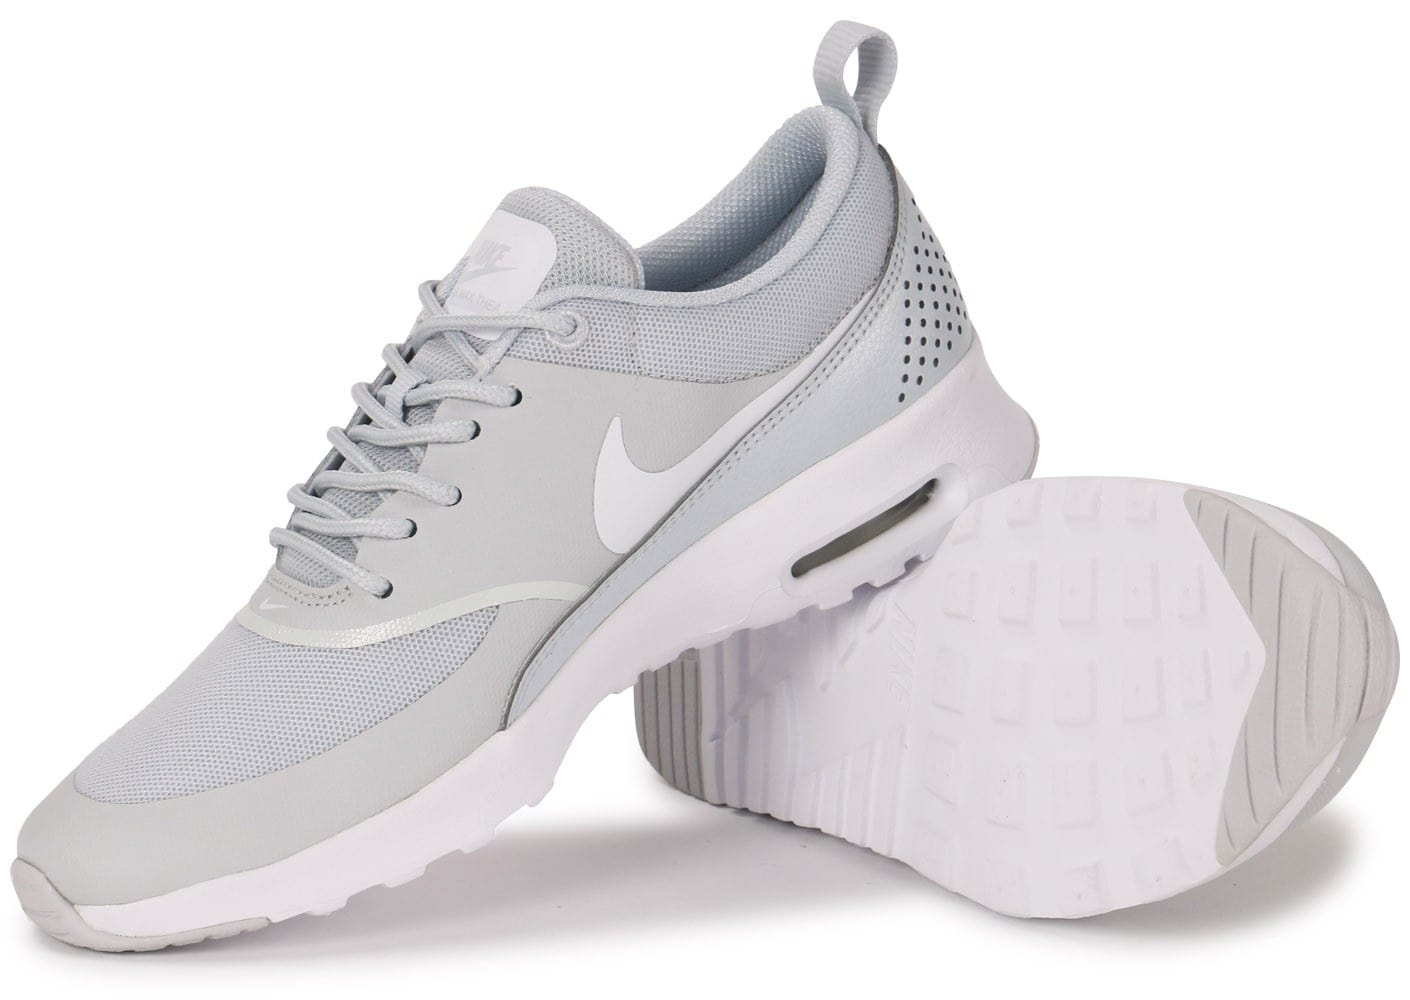 on sale 717bf 80c96 ... Chaussures Nike Air Max Thea grise vue intérieure ...